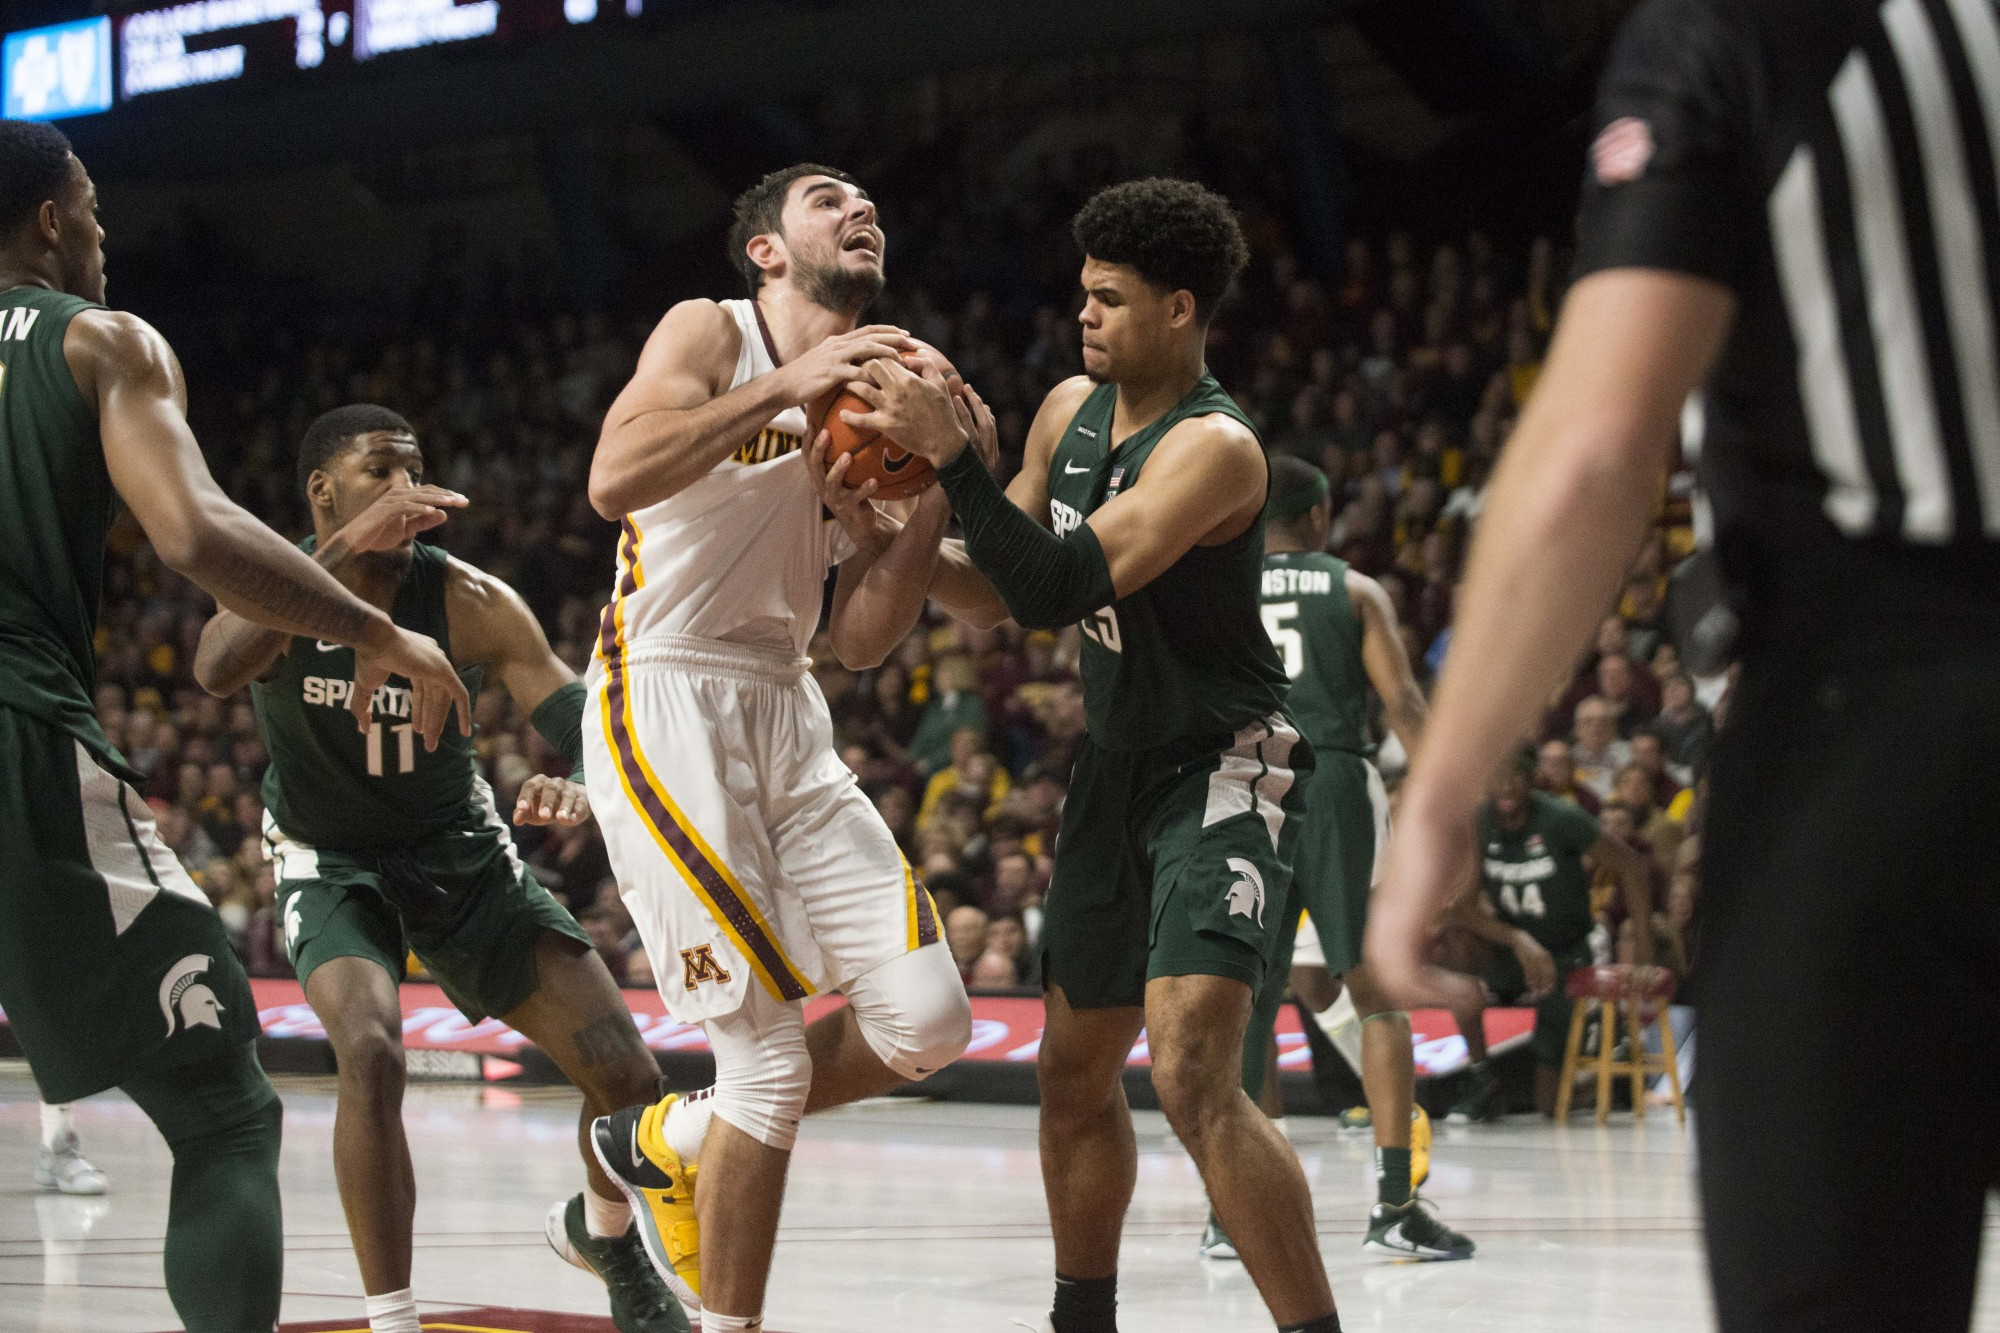 Forward Alihan Demir fights for the ball at Williams Arena on Sunday, Jan. 26. The Gophers lost to the Michigan State Spartans 70-52.